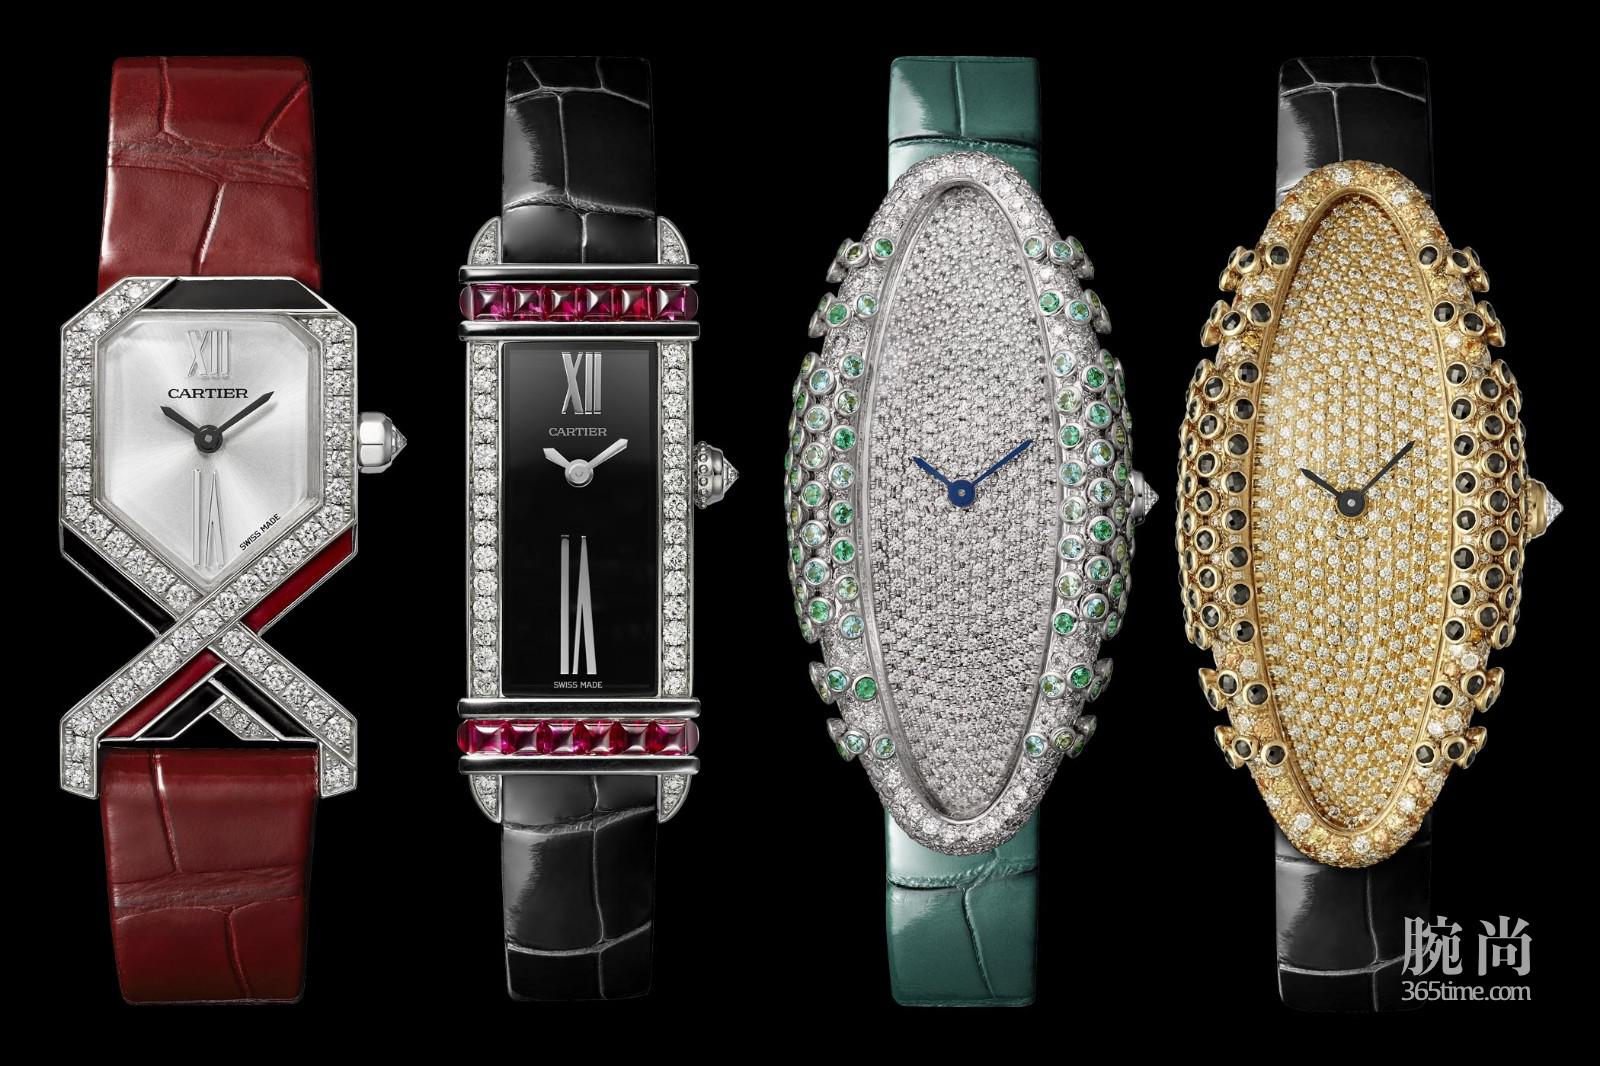 SIHH-2019-Cartier-Libre-Jewelry-collection-8.jpg